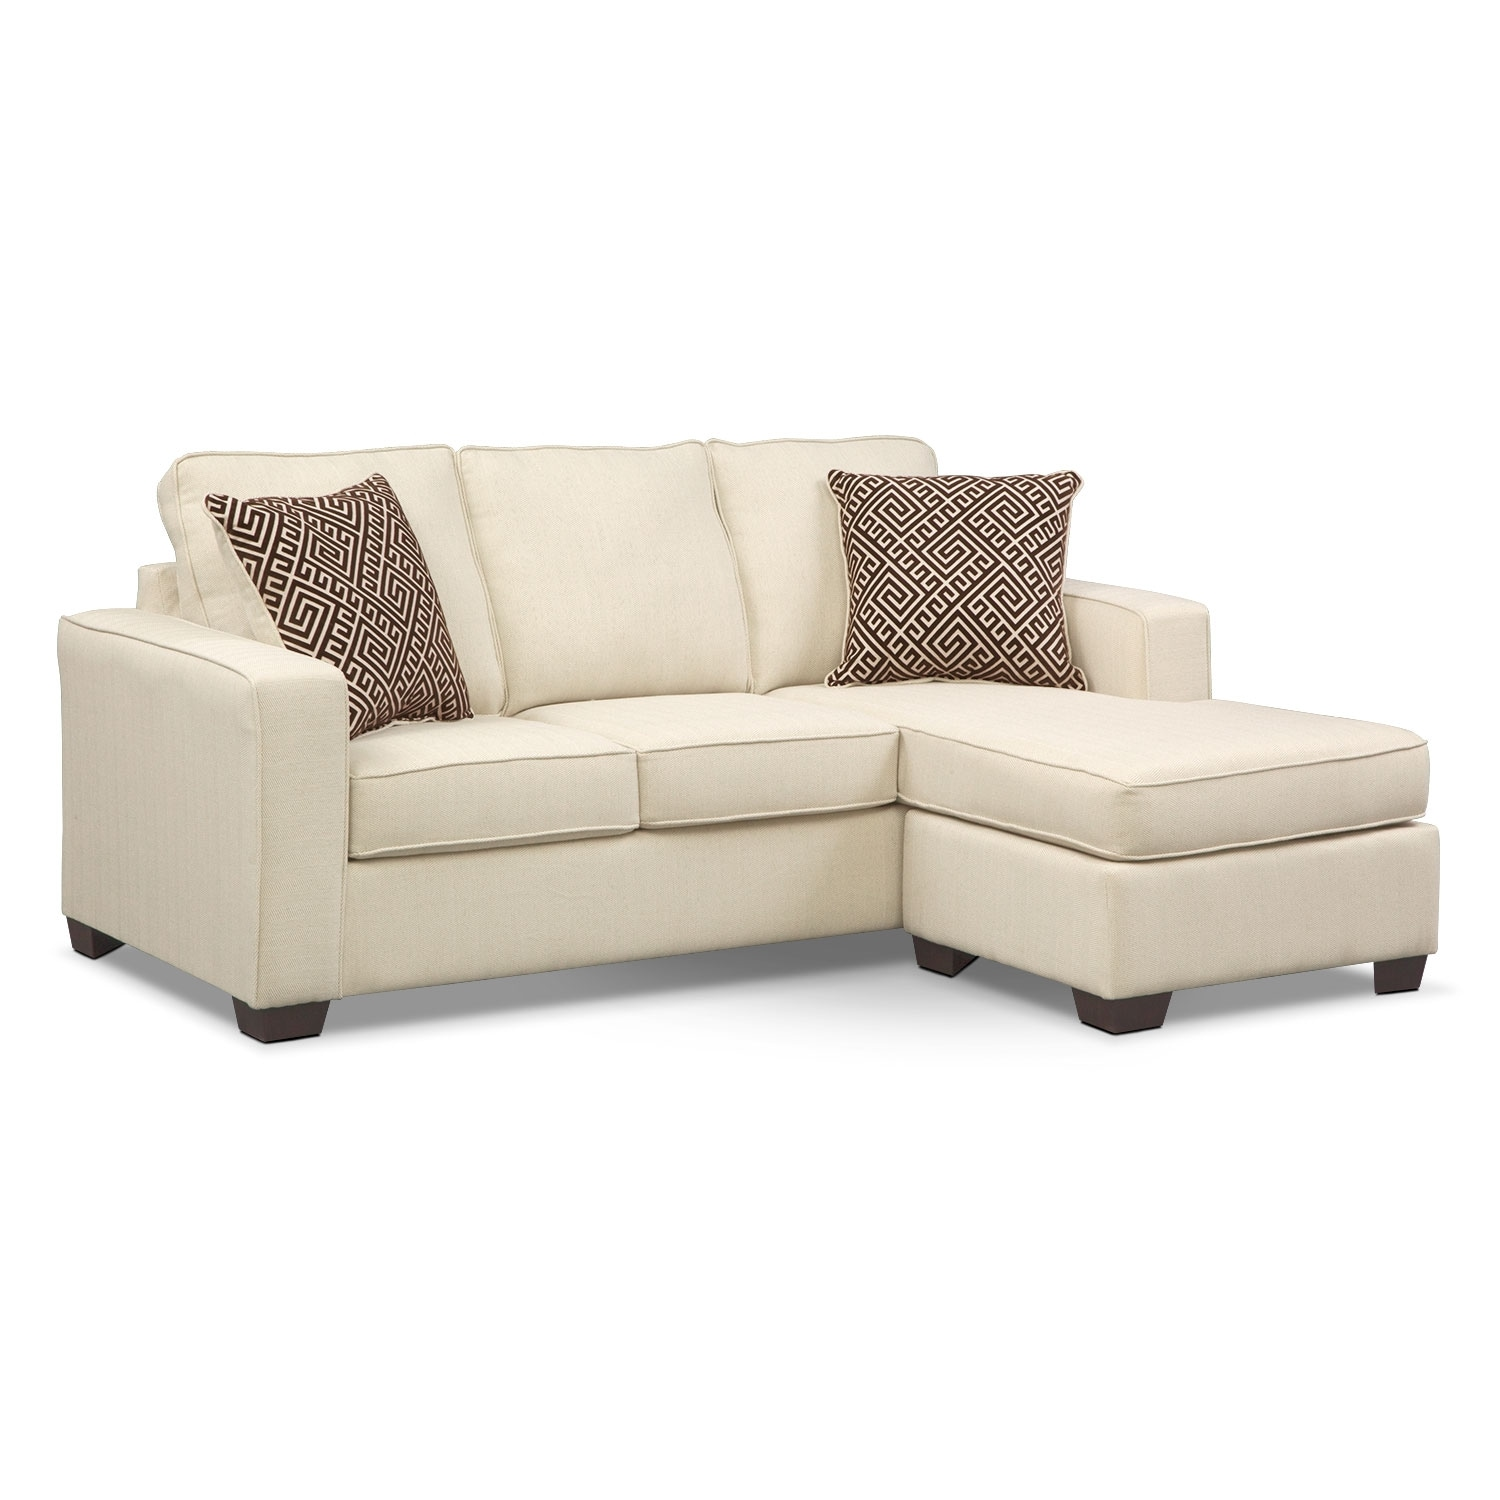 Sterling memory foam sleeper sofa with chaise beige for Sleeper sectional